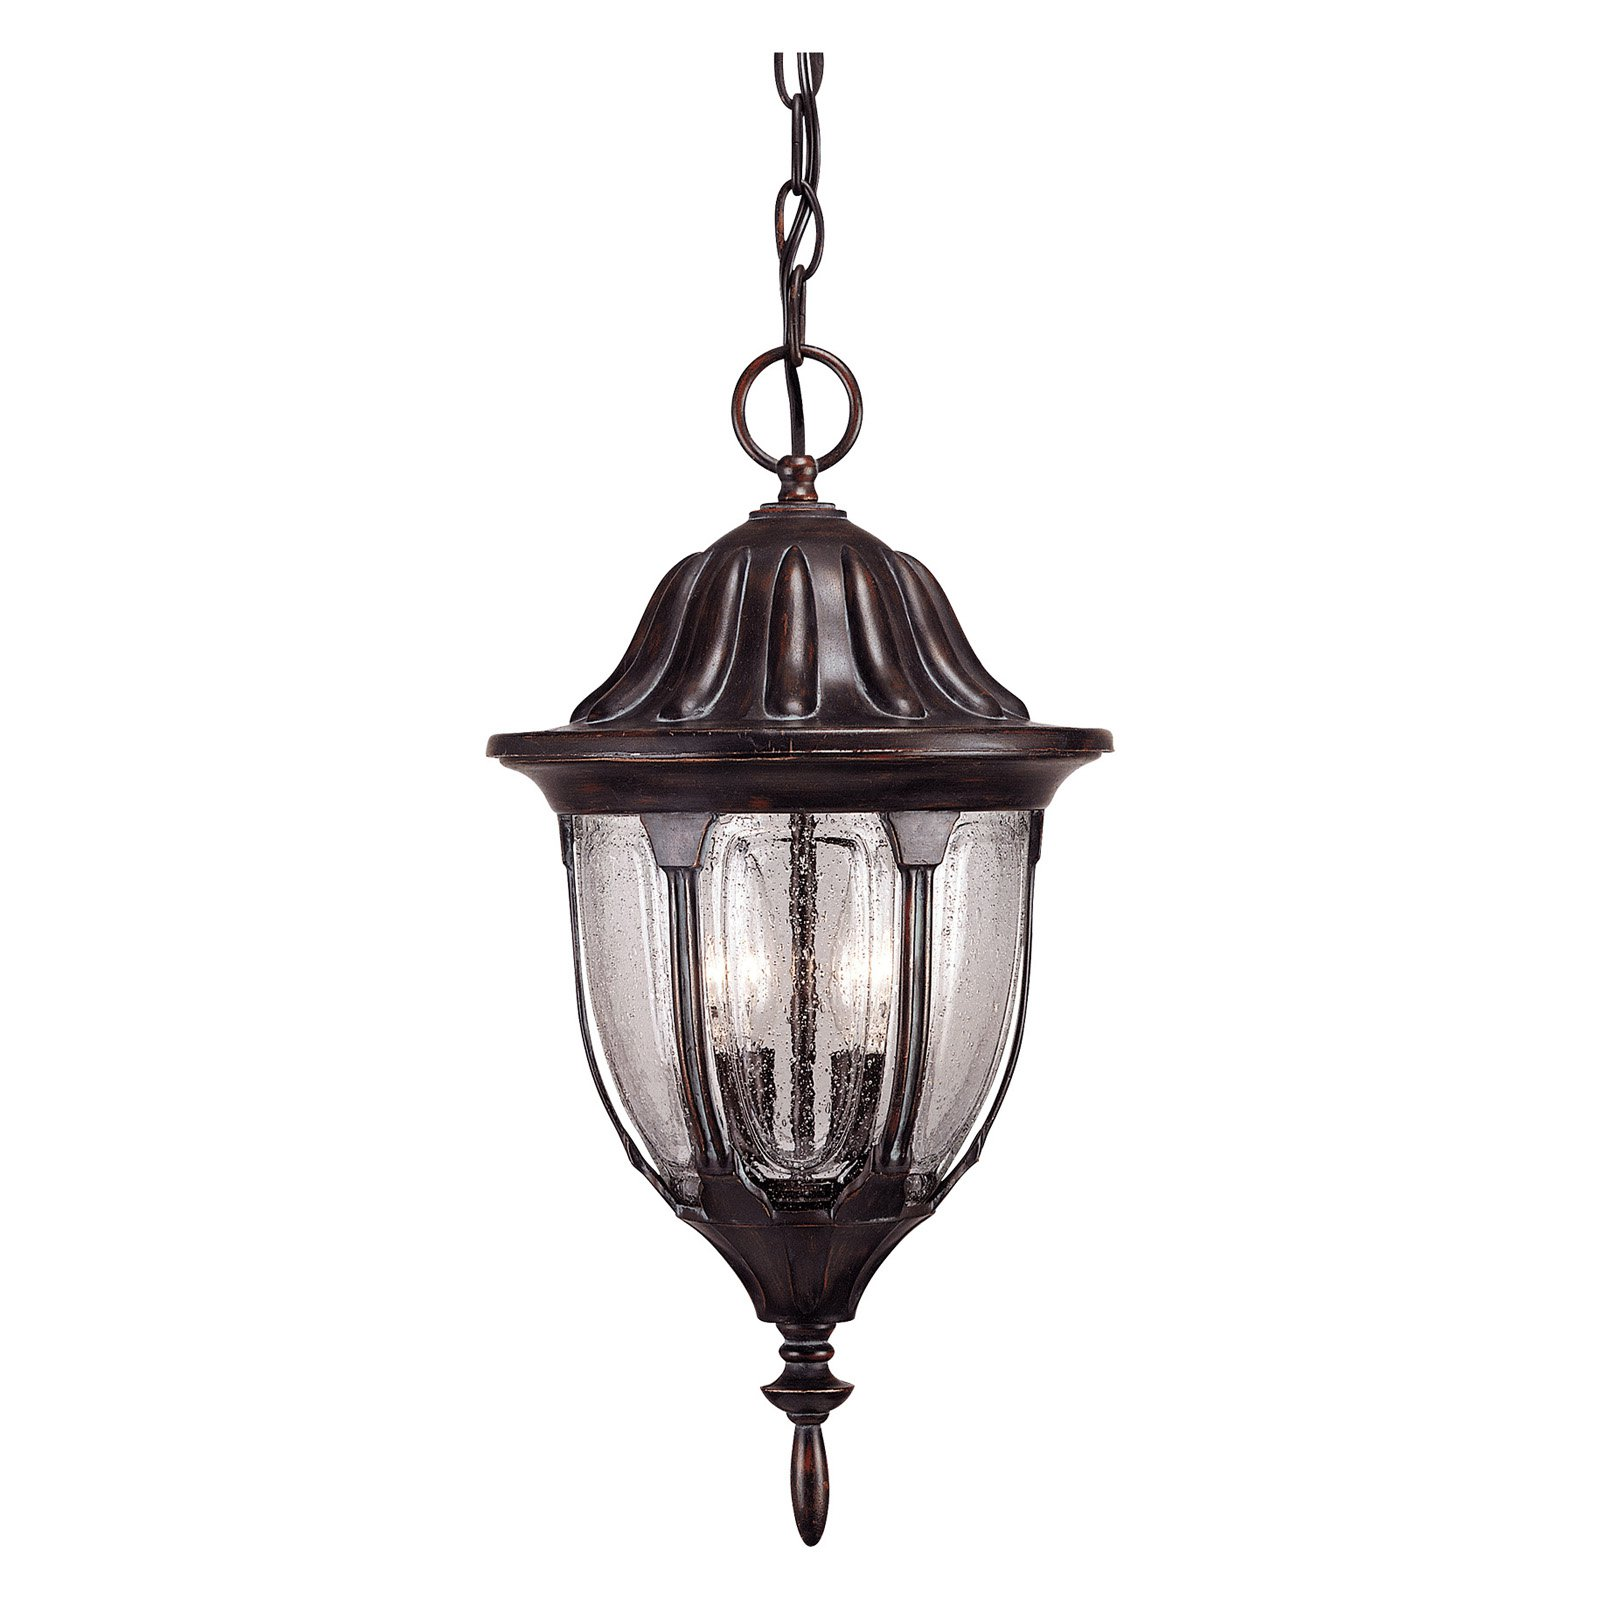 Savoy House Tudor 5-1502 Outdoor Hanging Lantern by Savoy House